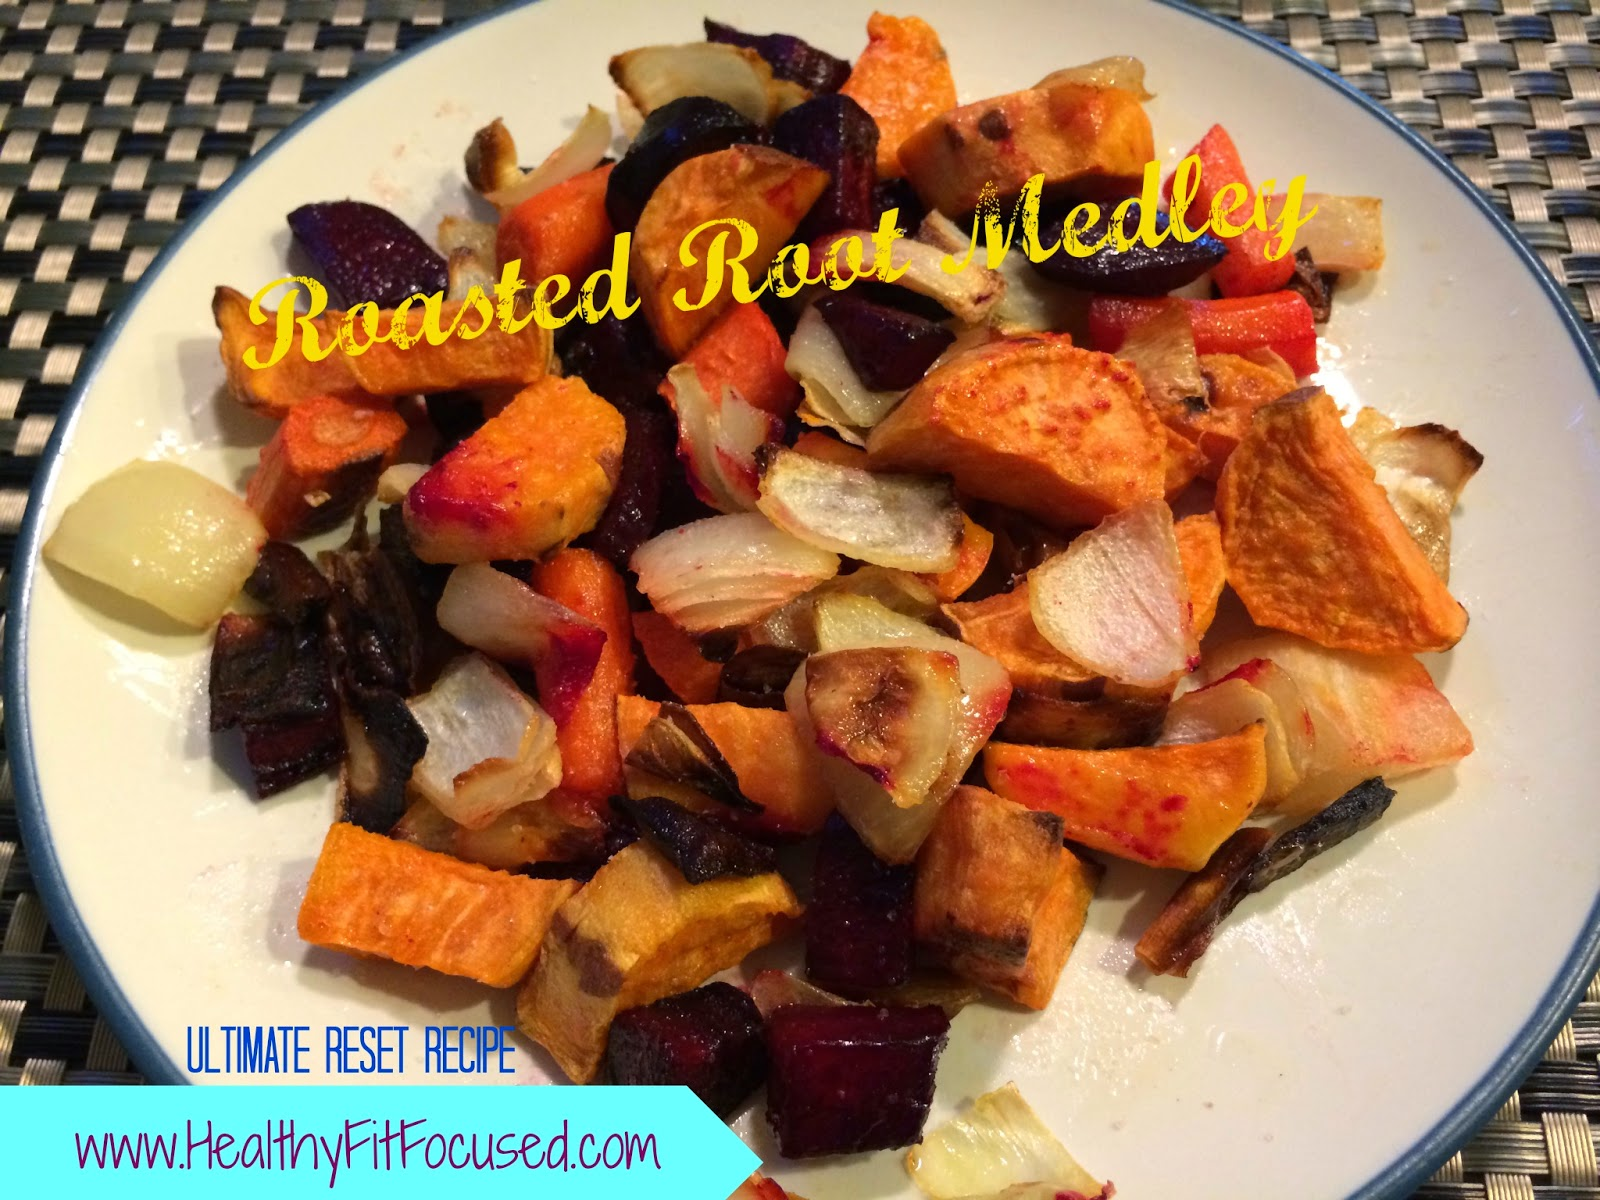 Roasted Root Medley, Ultimate Reset, Sweet Potato, Beet, Onion, Carrot, Vegan meal, Vegetarian meal, Meatless meal